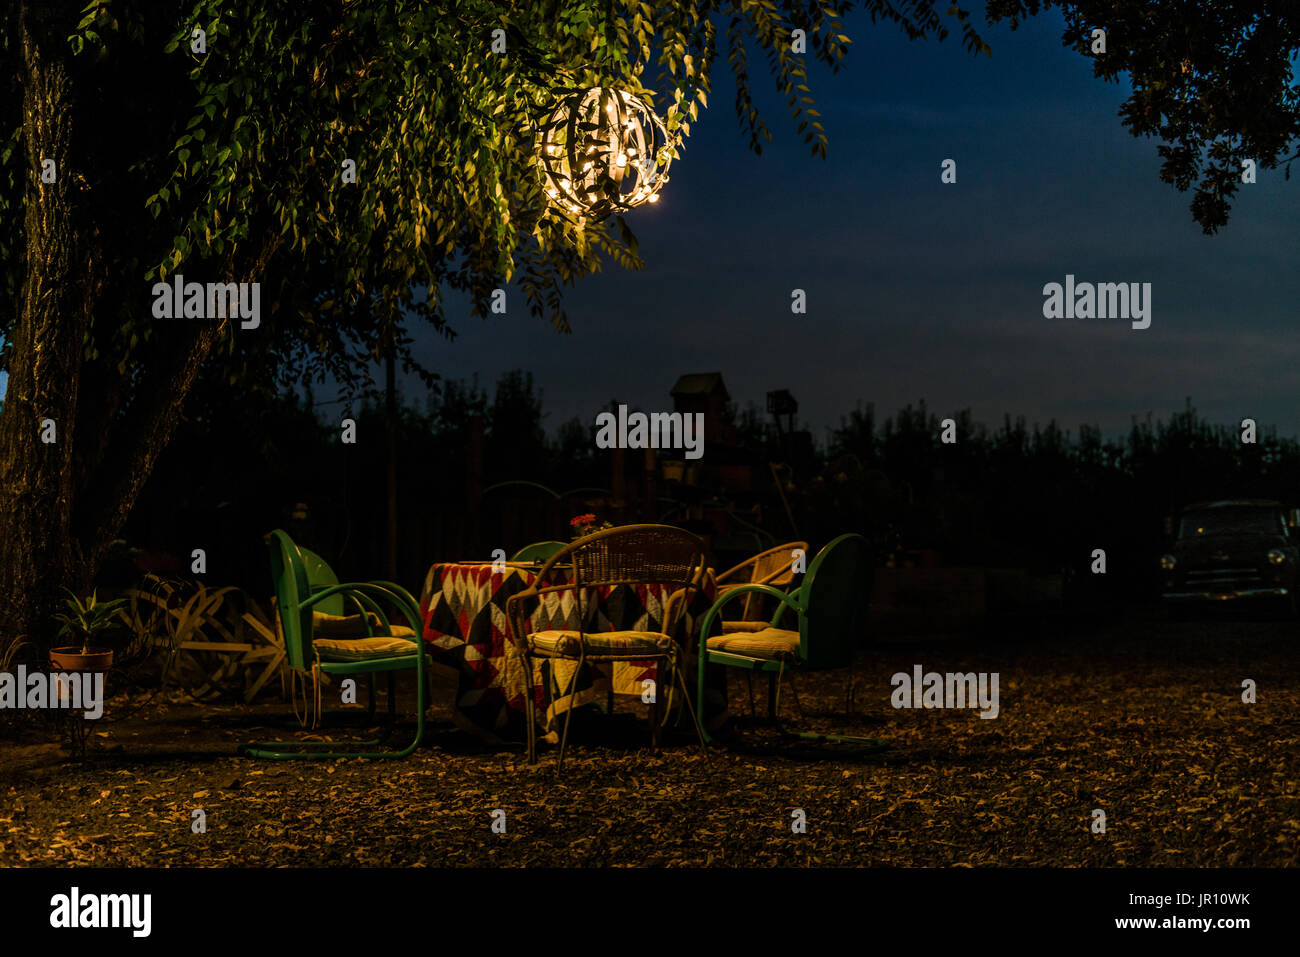 life in Lake County, CA, Friends,Parties,Good Times - Stock Image